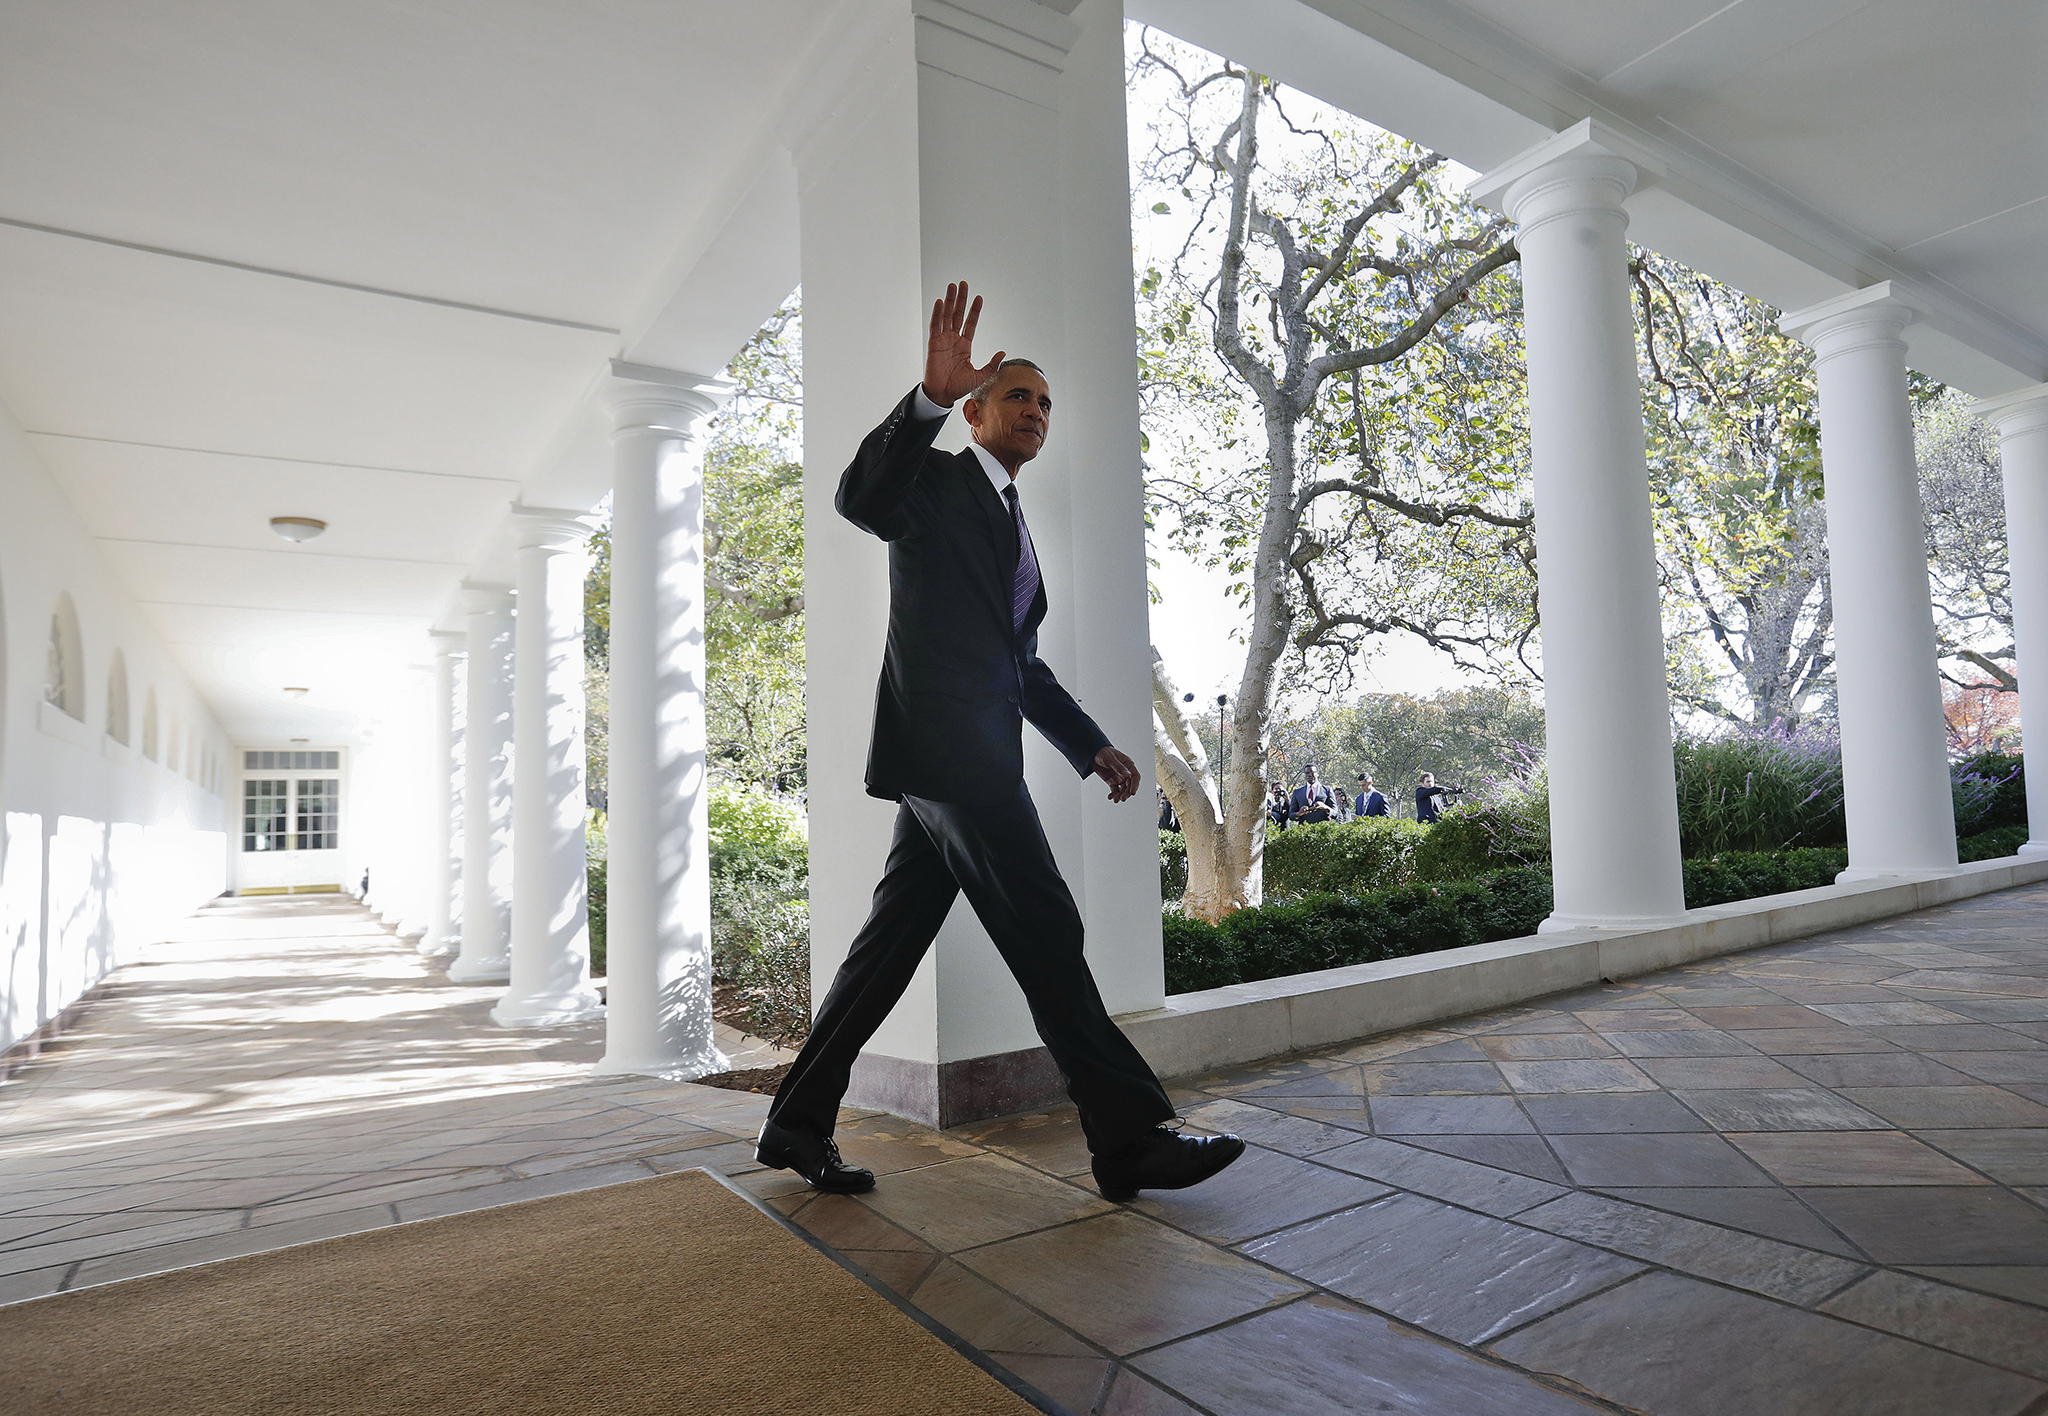 President Barack Obama waves as he walks down the White House Colonnade from the main residence to the Oval Office Tuesday, Nov. 8, 2016 in Washington. (AP Photo/Pablo Martinez Monsivais)